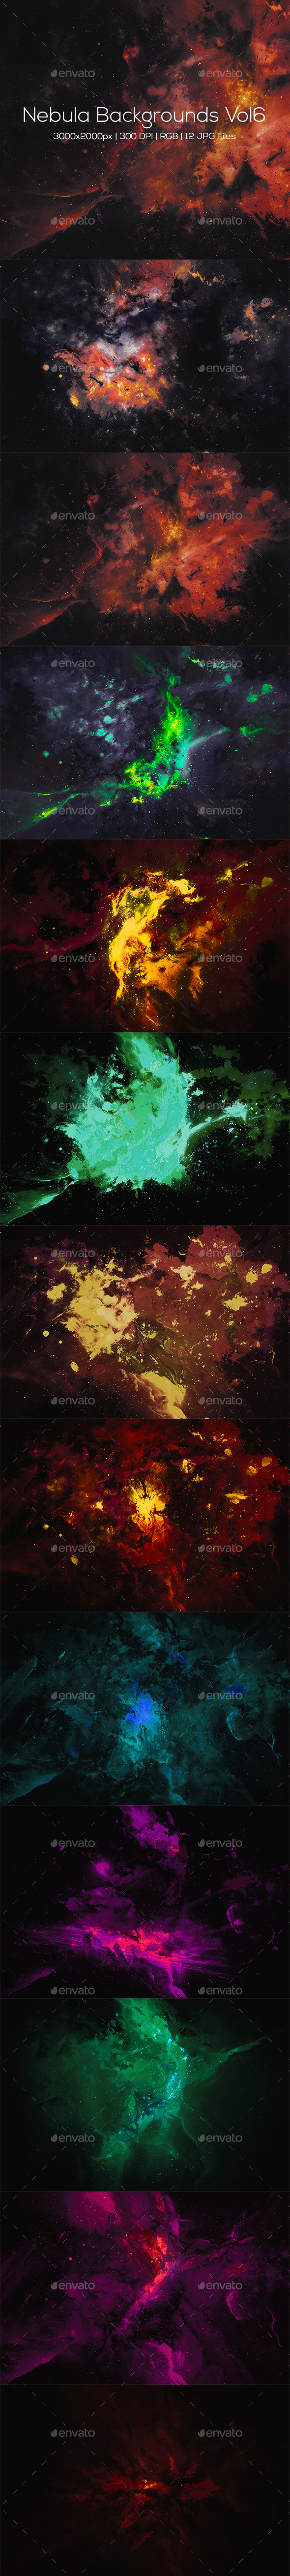 Nebula Backgrounds Vol6 - Abstract Backgrounds